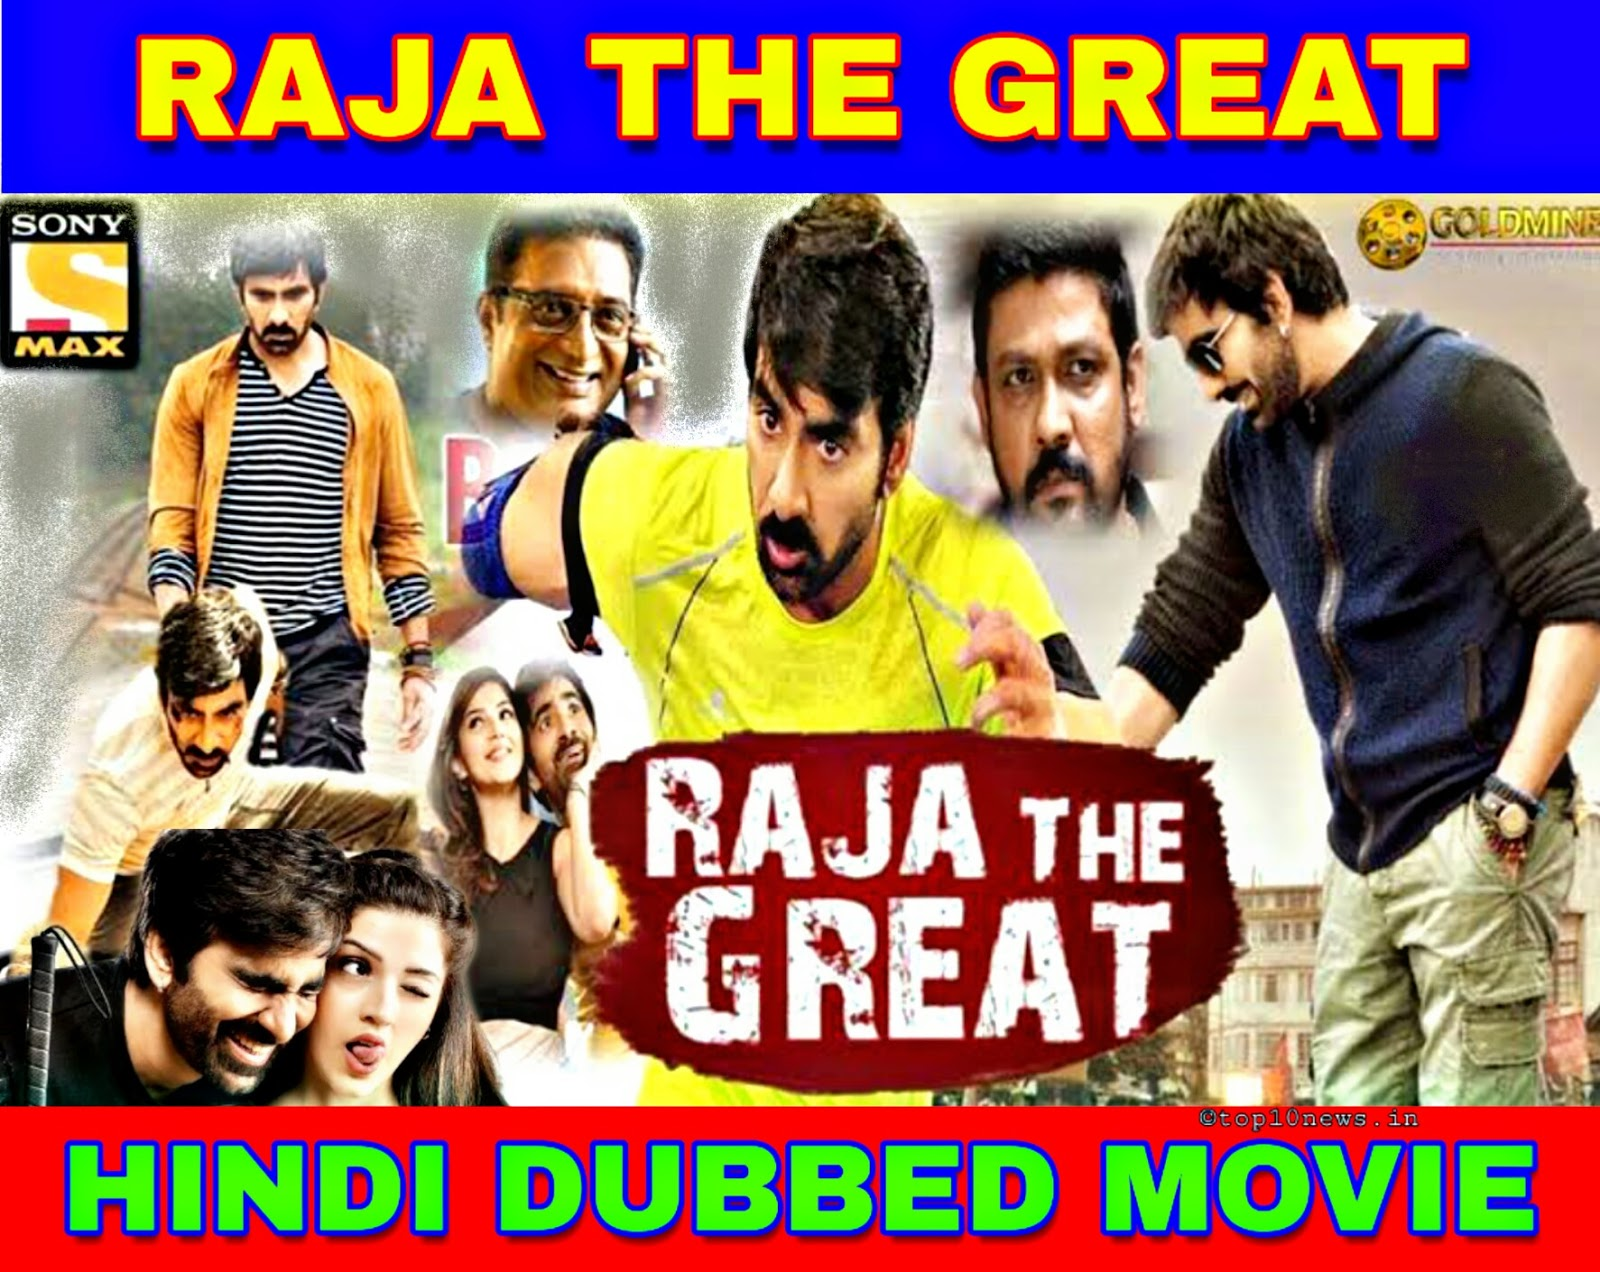 Raja The Great (Hindi Dubbed) Full Movie Download Filmywap, Filmyzilla, mp4moviez